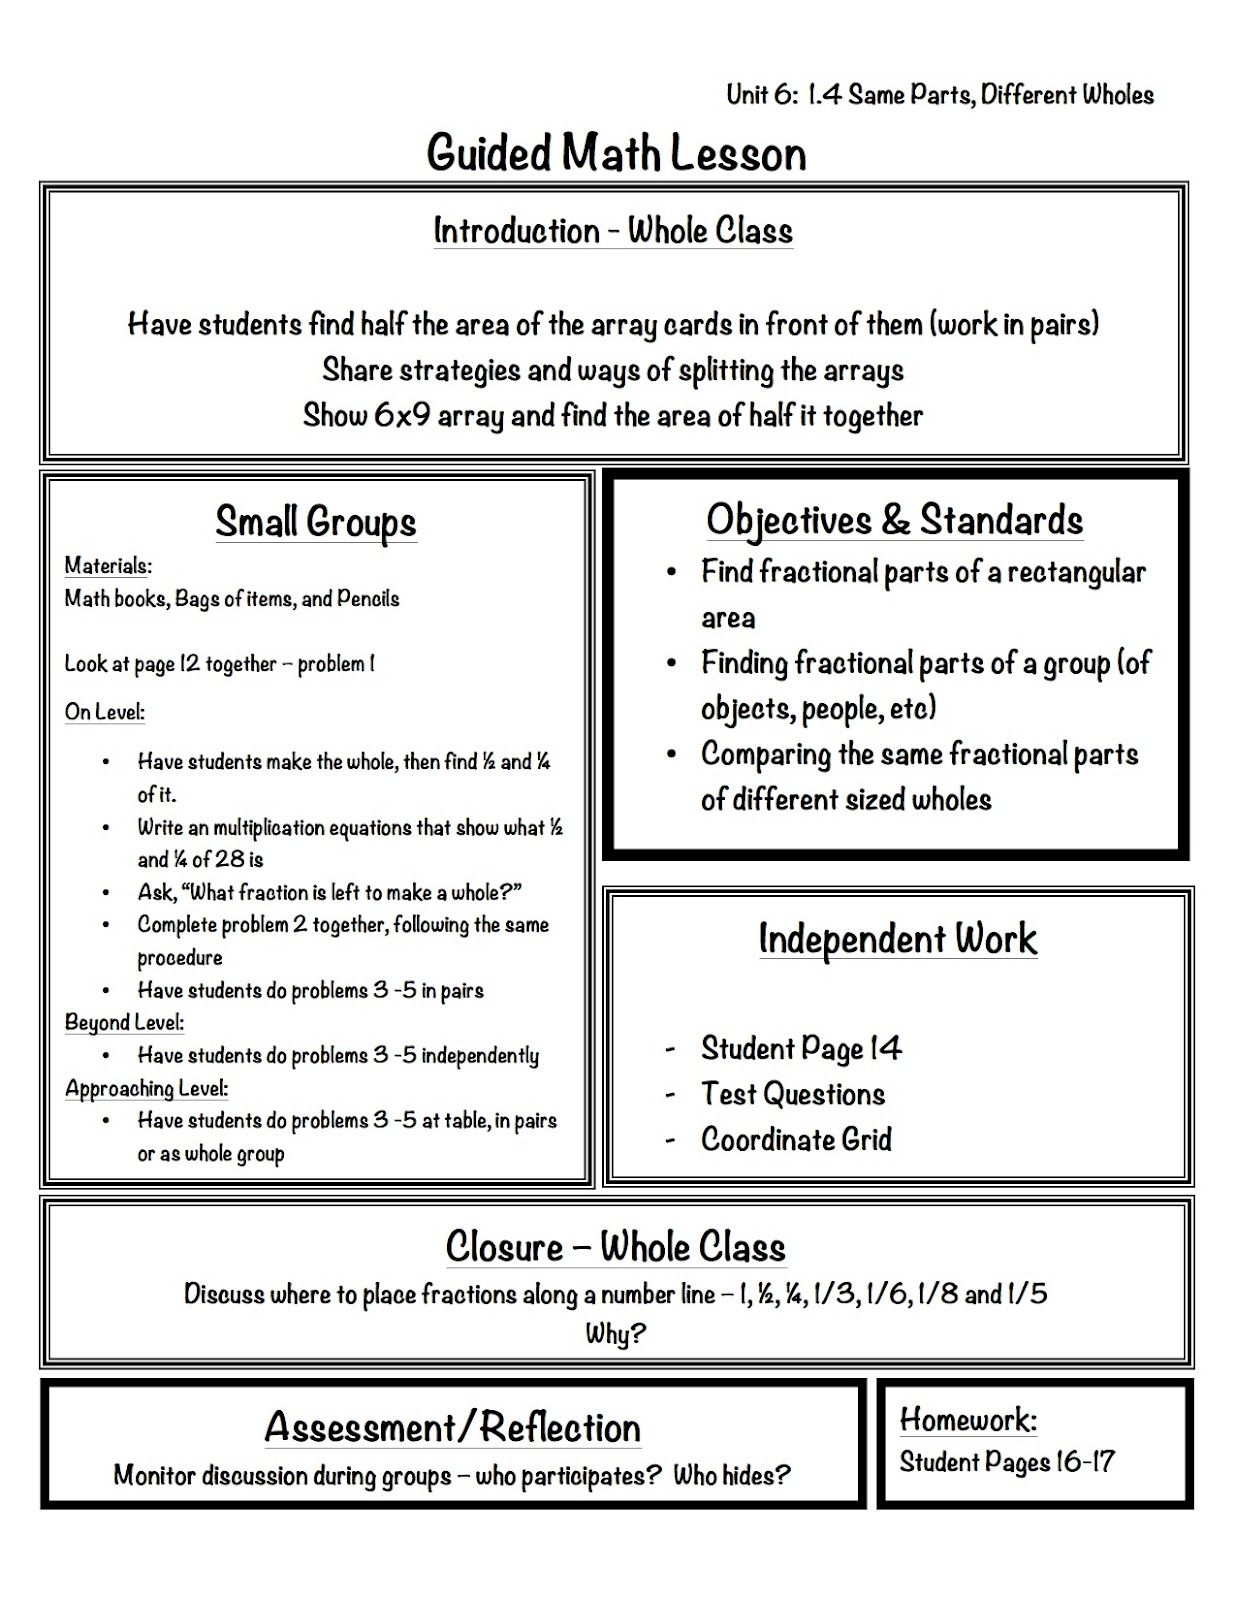 2 Organized Apples: Classroom Solutions for Grades 3-5: Guided Math ...